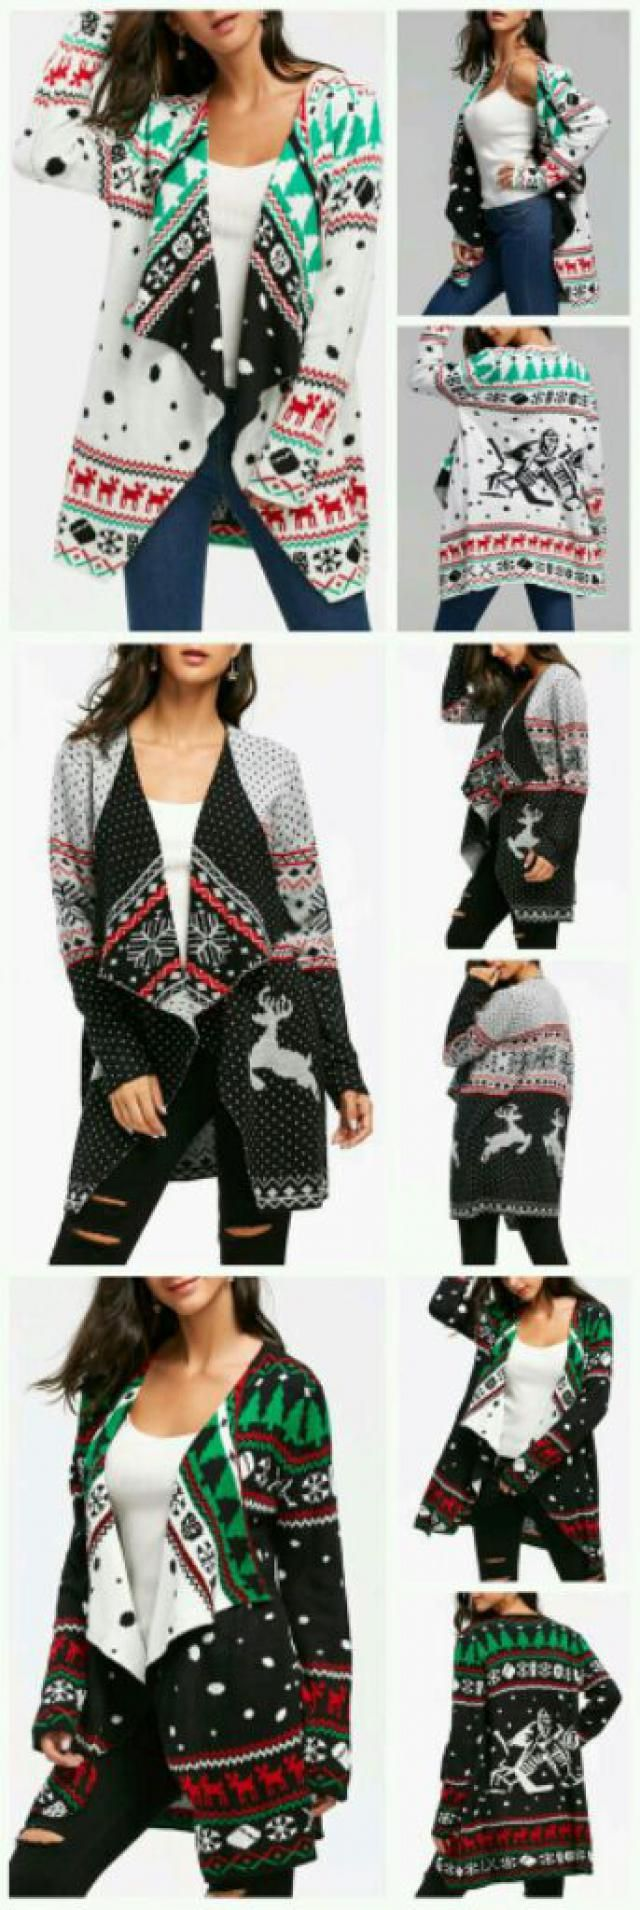 The holiday motifs on the cardigan.